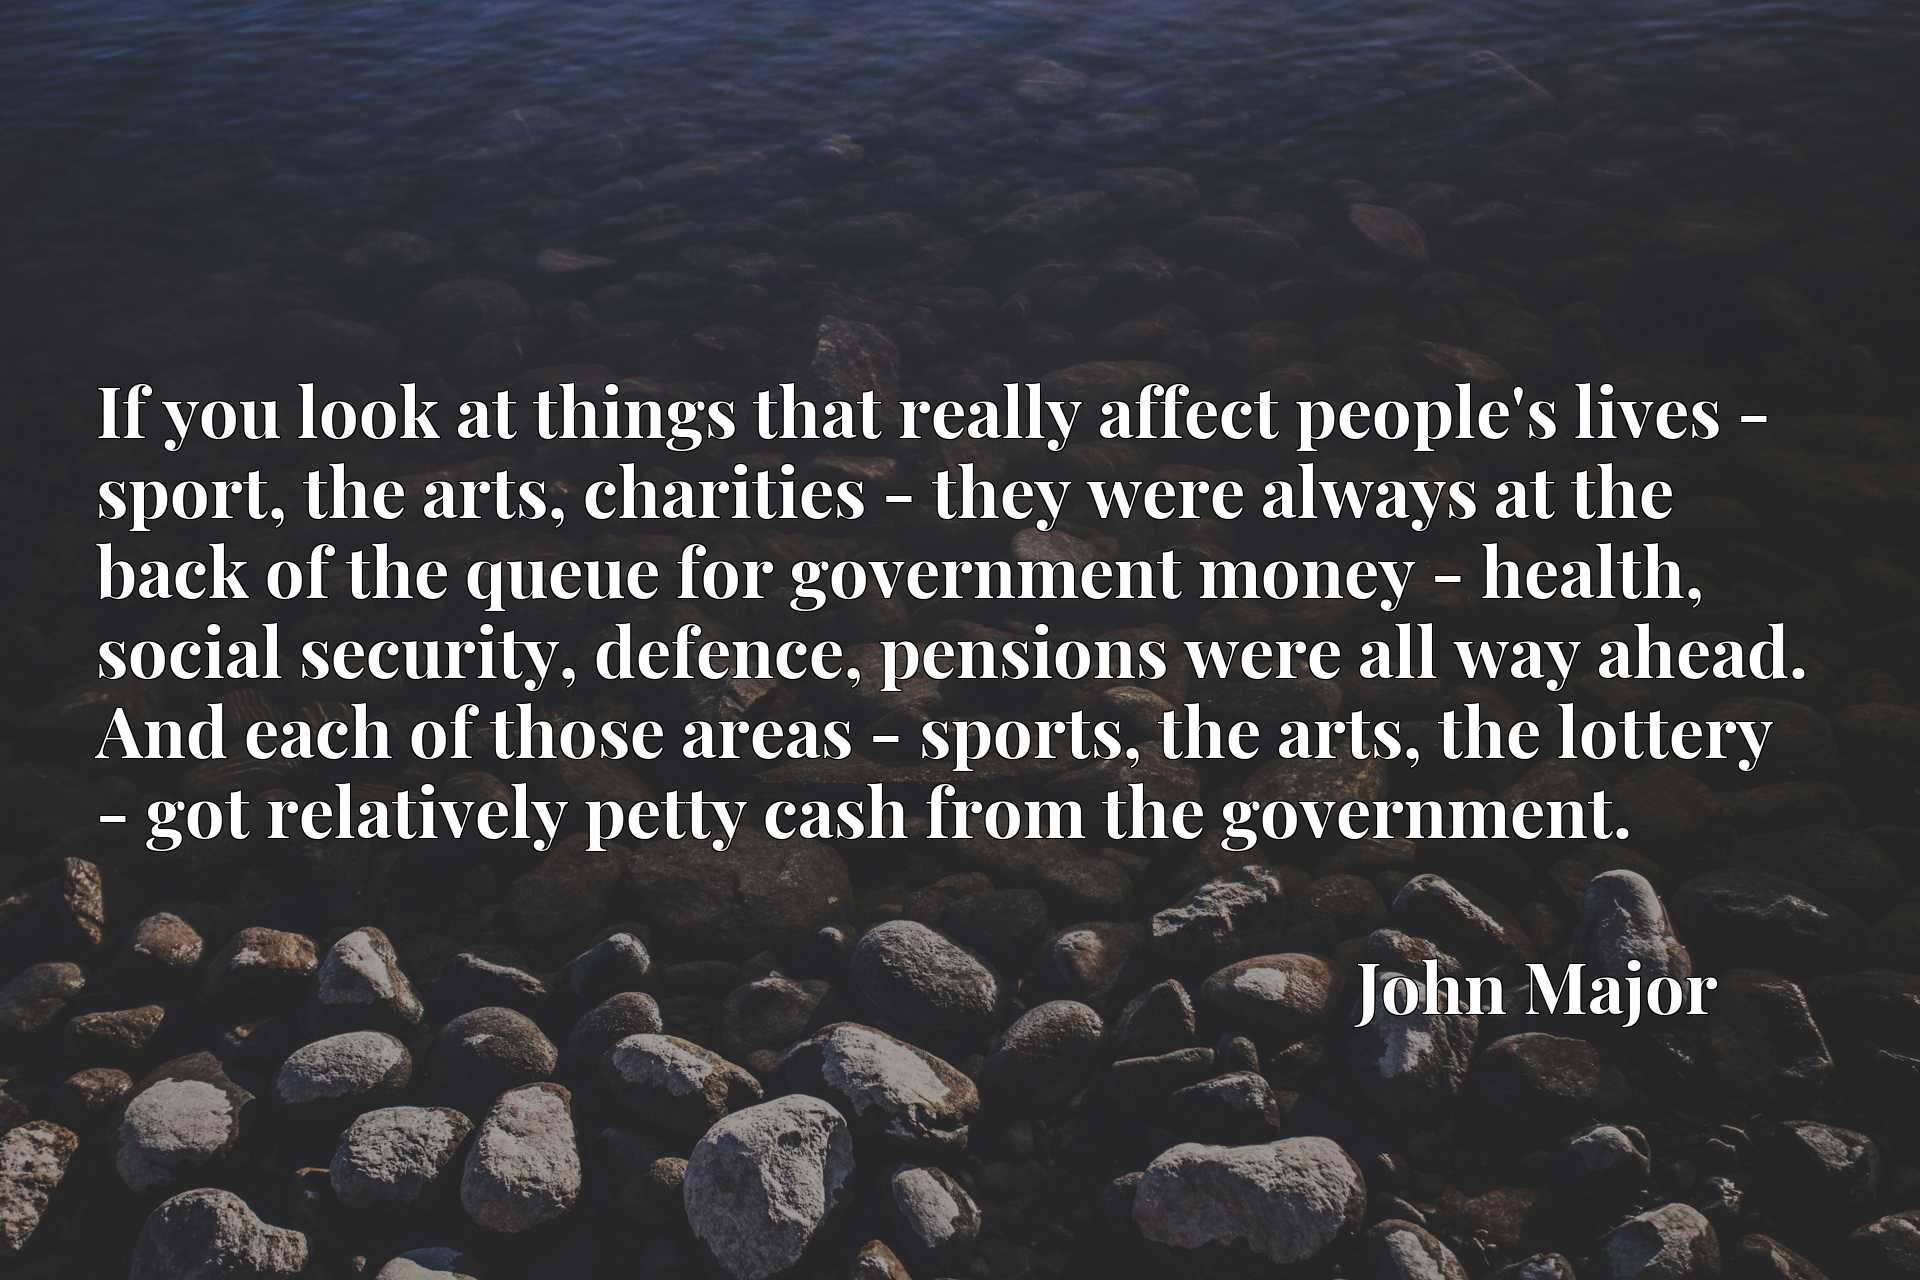 If you look at things that really affect people's lives - sport, the arts, charities - they were always at the back of the queue for government money - health, social security, defence, pensions were all way ahead. And each of those areas - sports, the arts, the lottery - got relatively petty cash from the government.